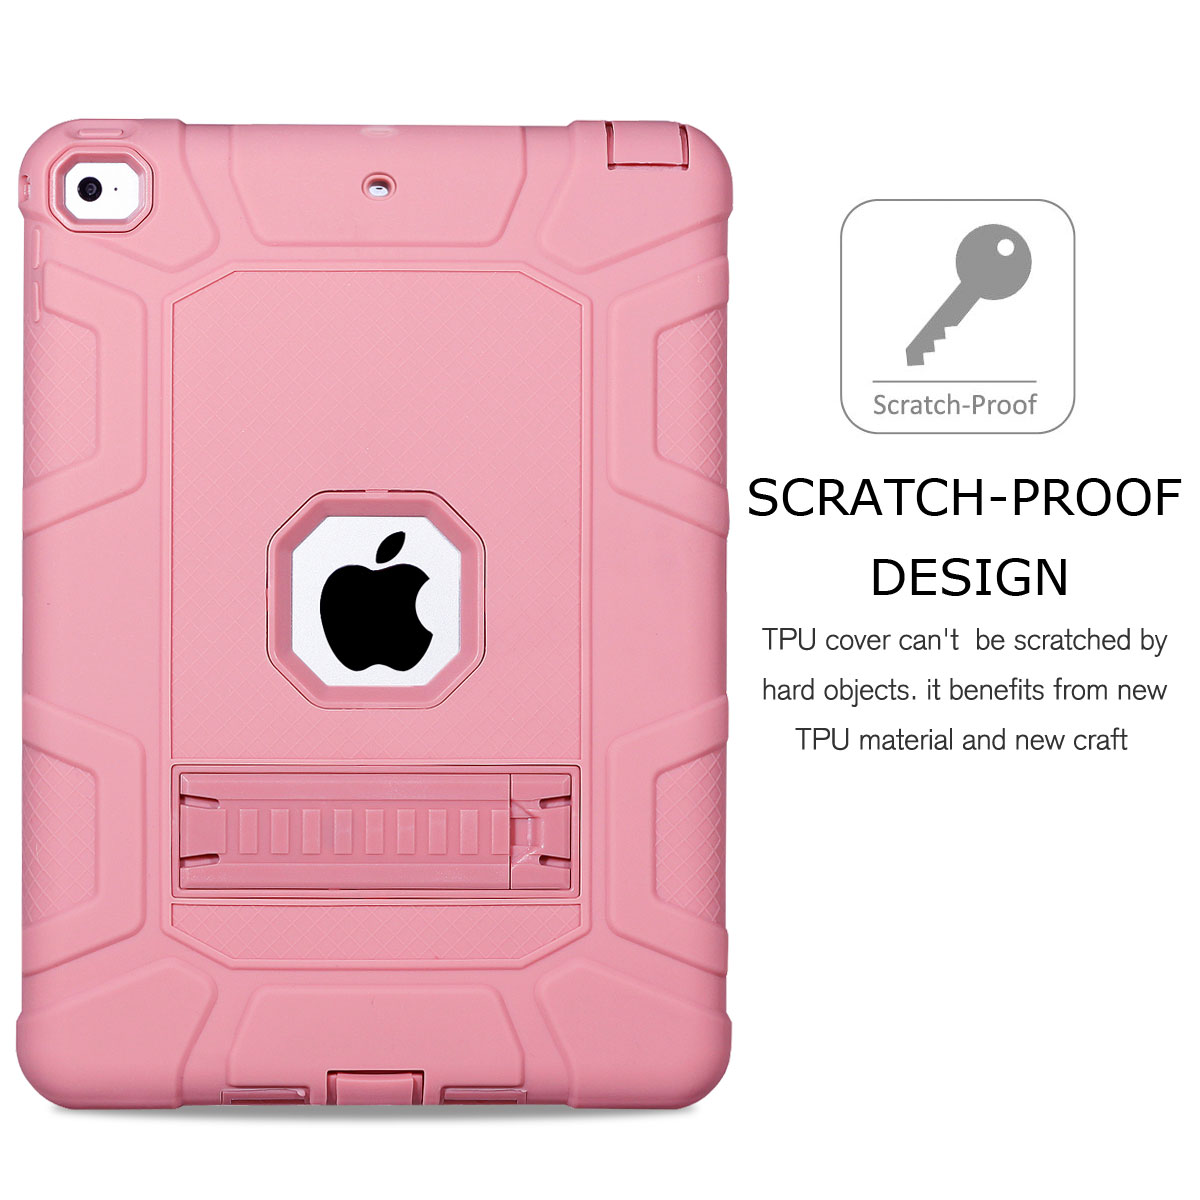 Heavy-Shockproof-Rubber-Stand-Case-Cover-For-Apple-iPad-234-5-Mini-Air-Pro-9-7-034 thumbnail 56